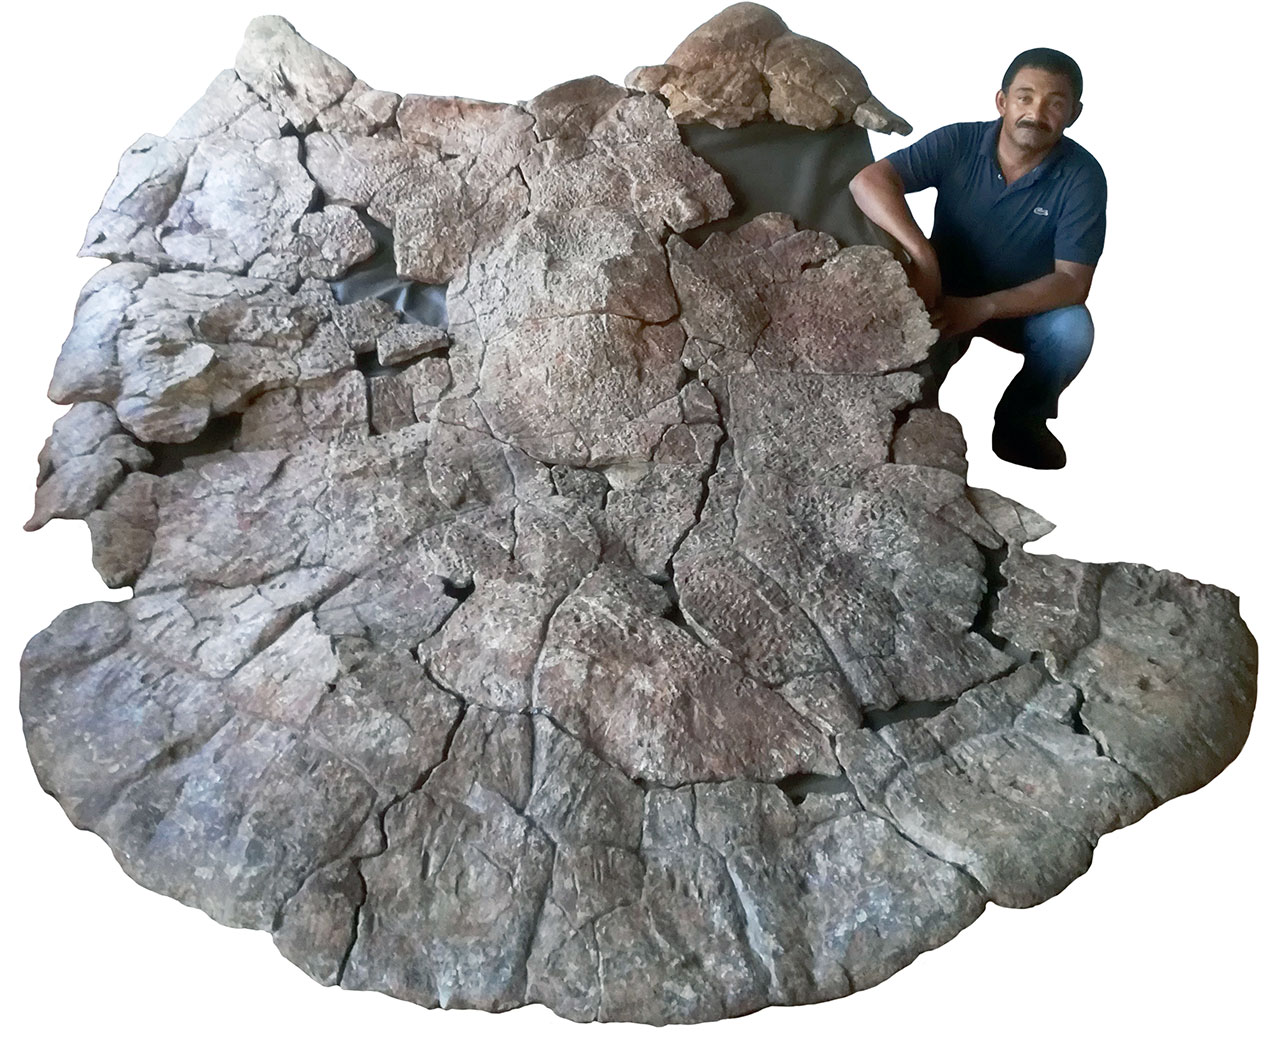 Venezuelan Palaeontologist Rodolfo Sánchez and a male carapace of Stupendemys geographicus, from Venezuela, found in 8 million years old deposits. (Image: Jorge Carrillo)